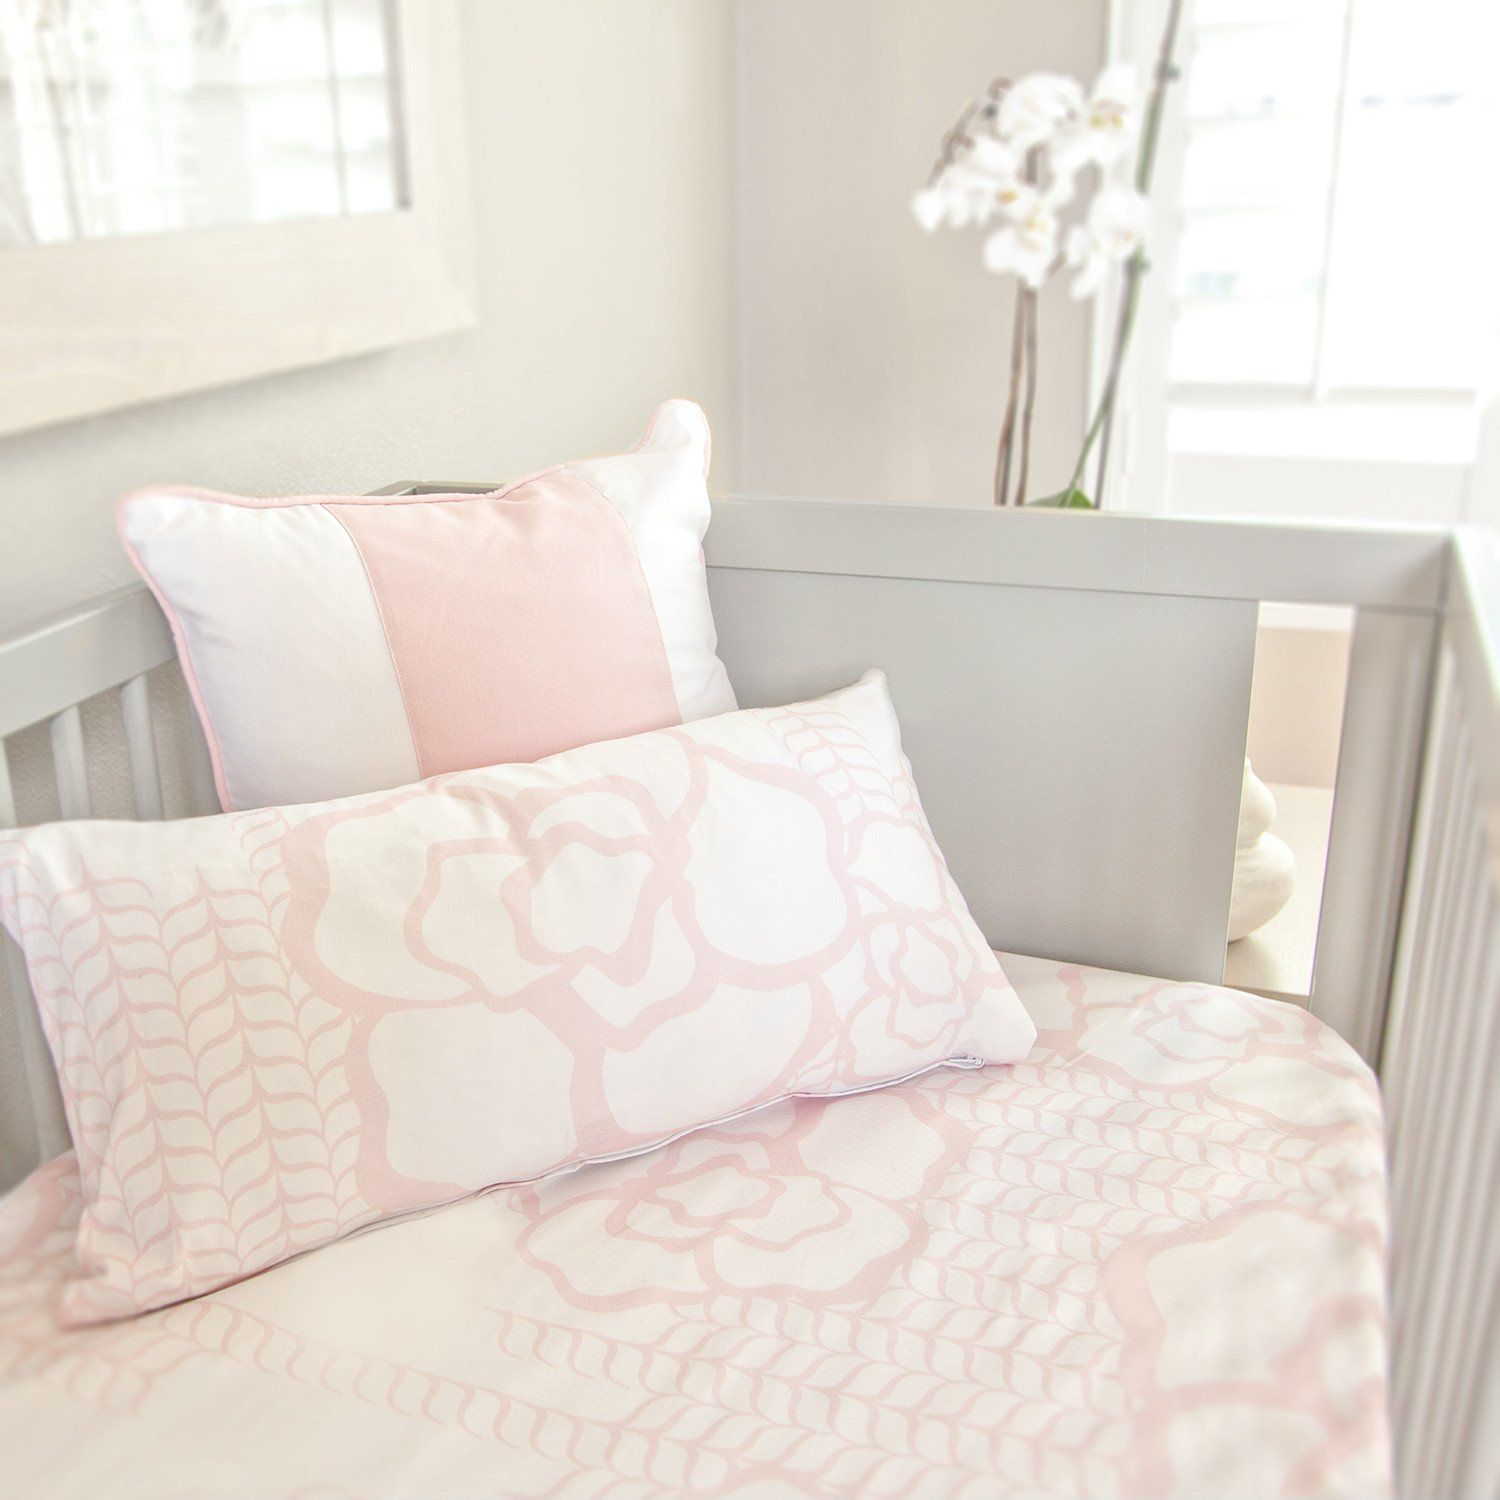 Capri Pillow - Project Nursery